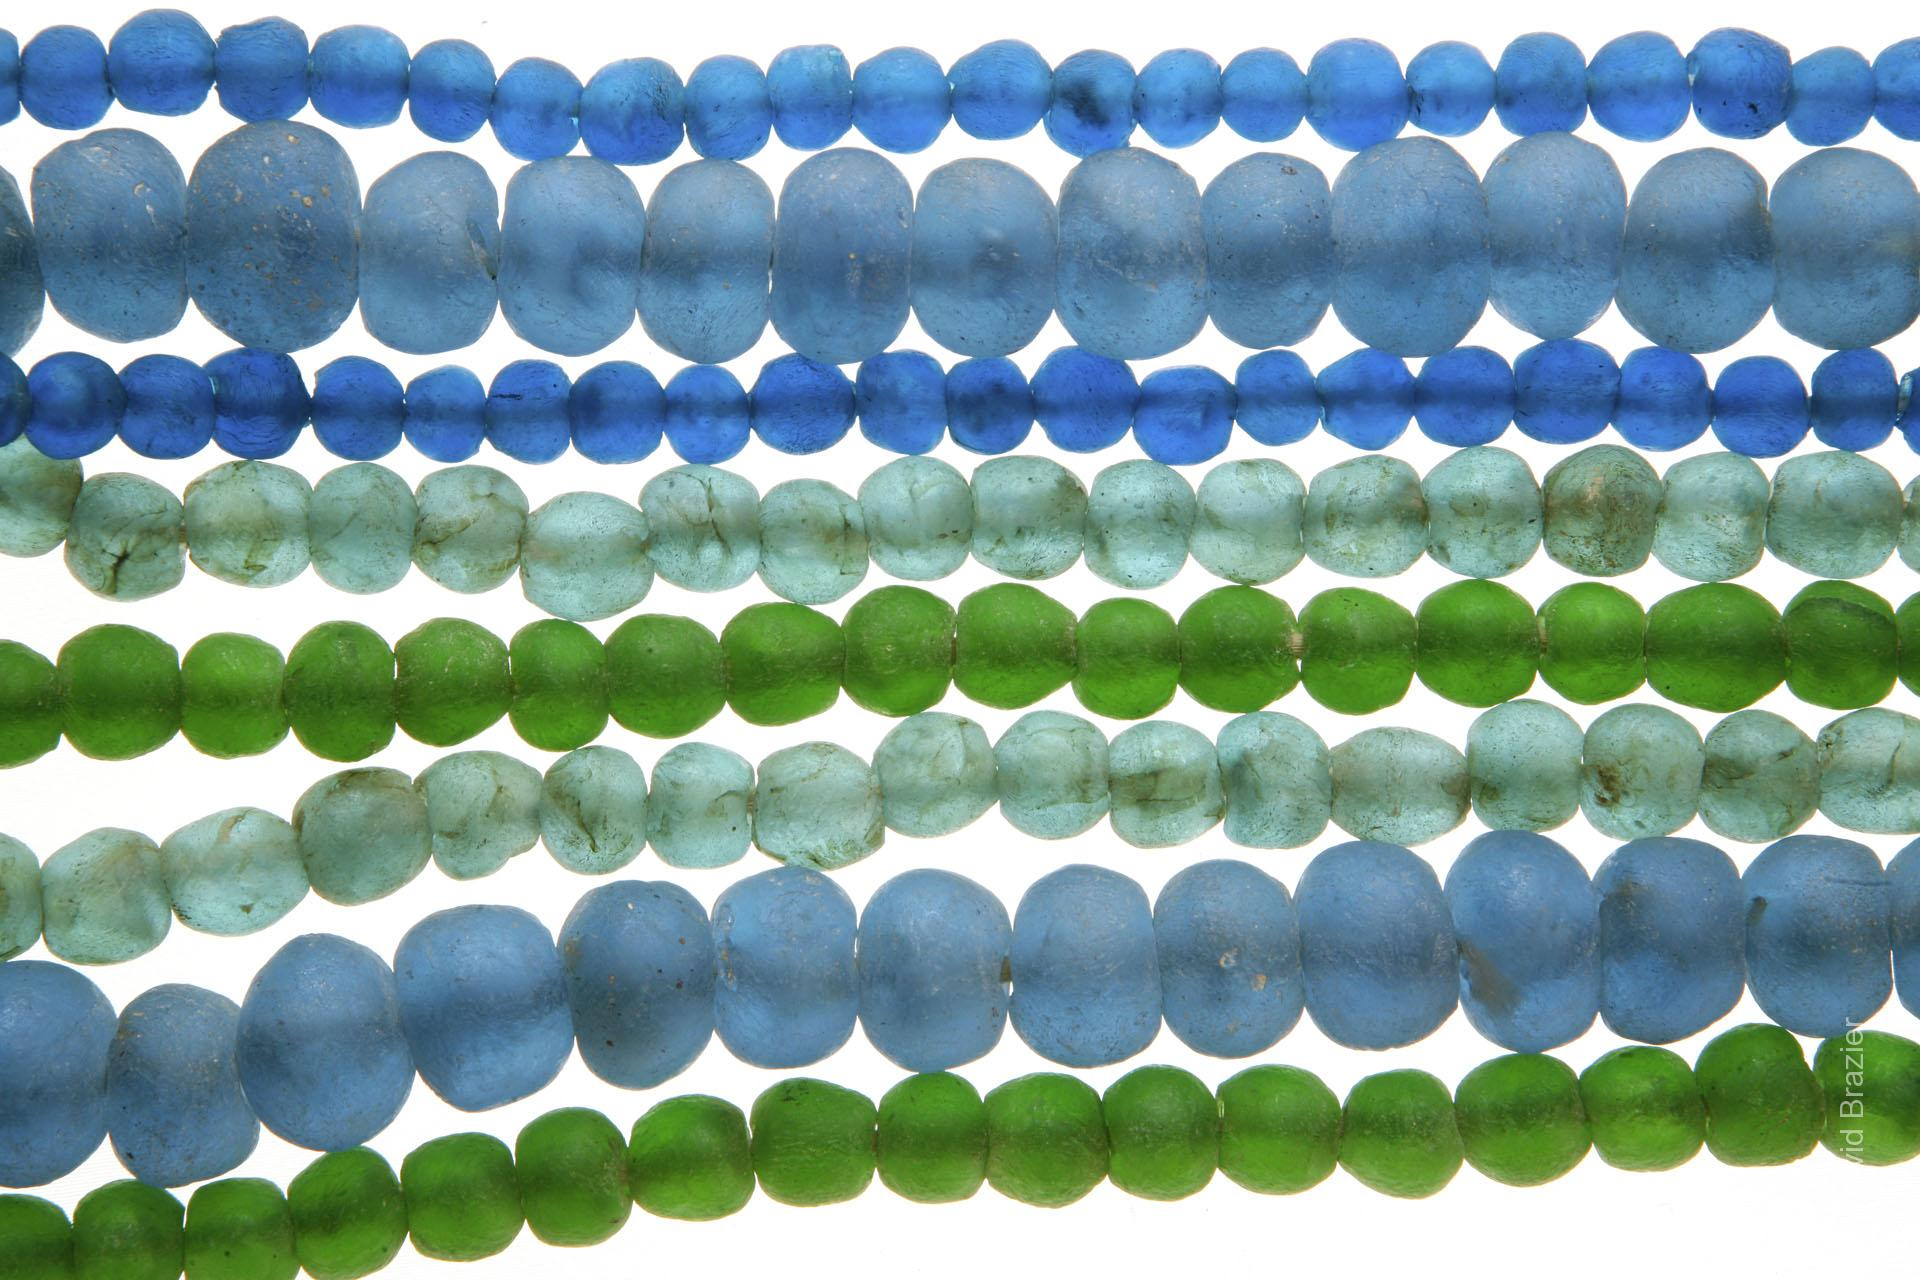 Blue and green recycled glass beads on white background